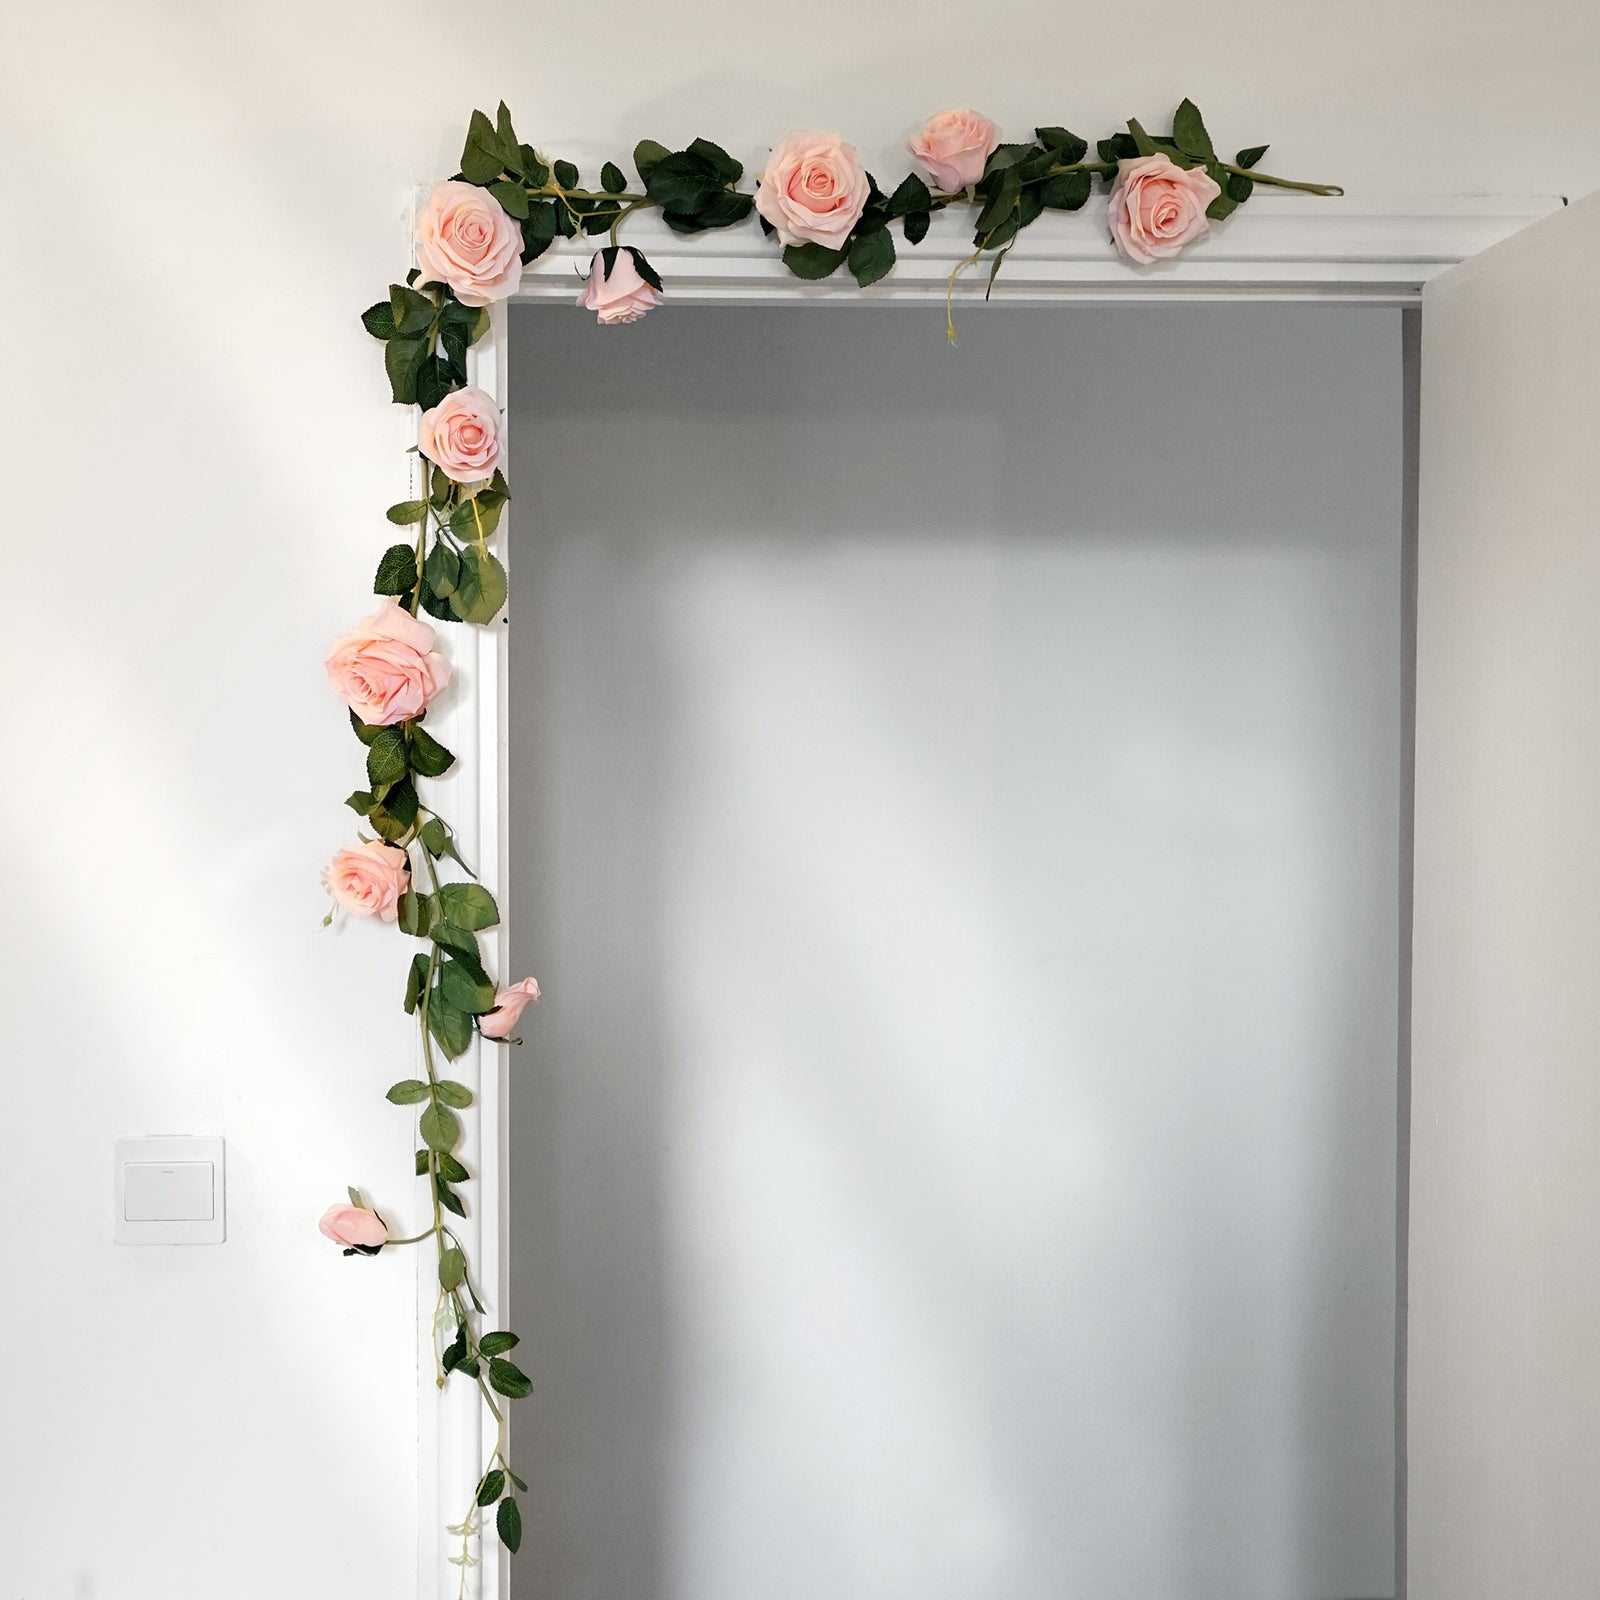 FiveSeasonStuff 2 Pcs Bendable Flower Garland Artificial Silk Rose Vine Leaves Hanging Face Flowers for Wall Decoration, Wreaths (Pink)